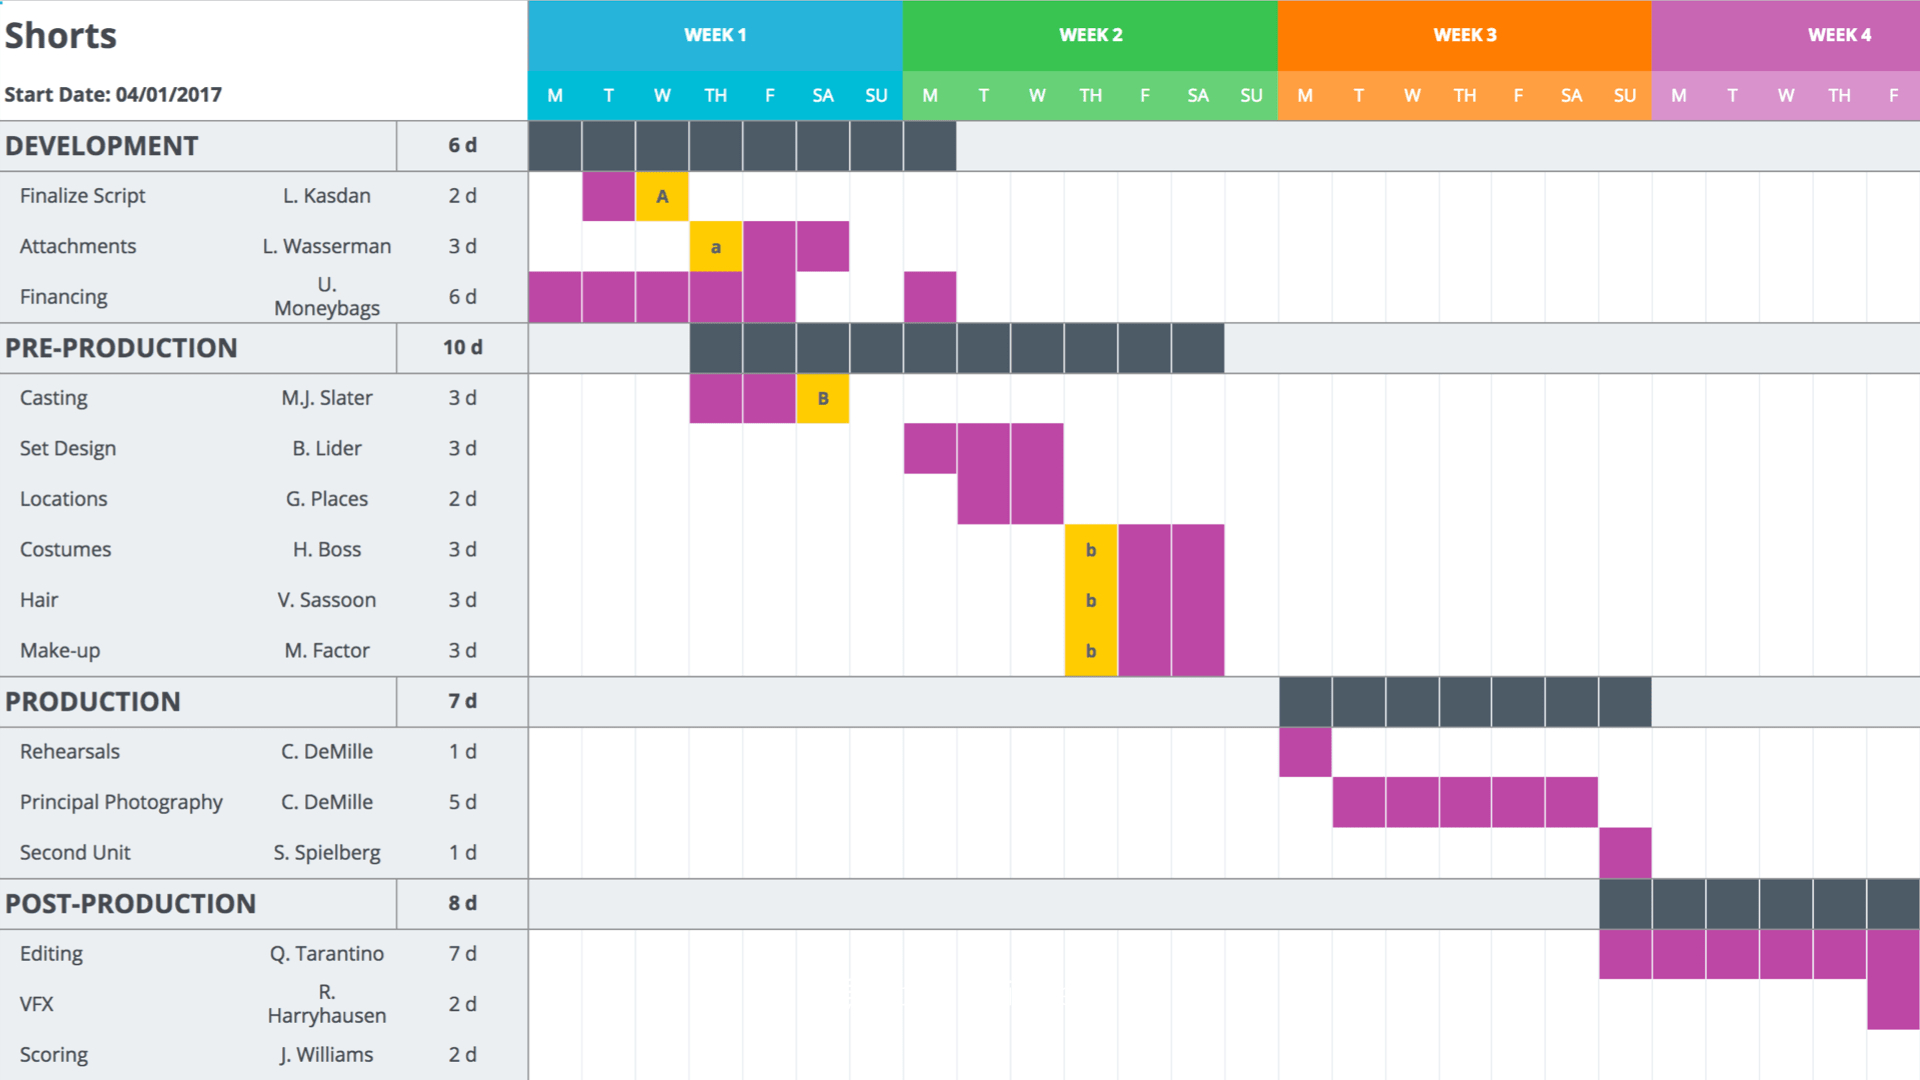 Mastering Your Production Calendar [Free Gantt Chart Excel Template] within 6 Day Work Week Template For Manufacturing